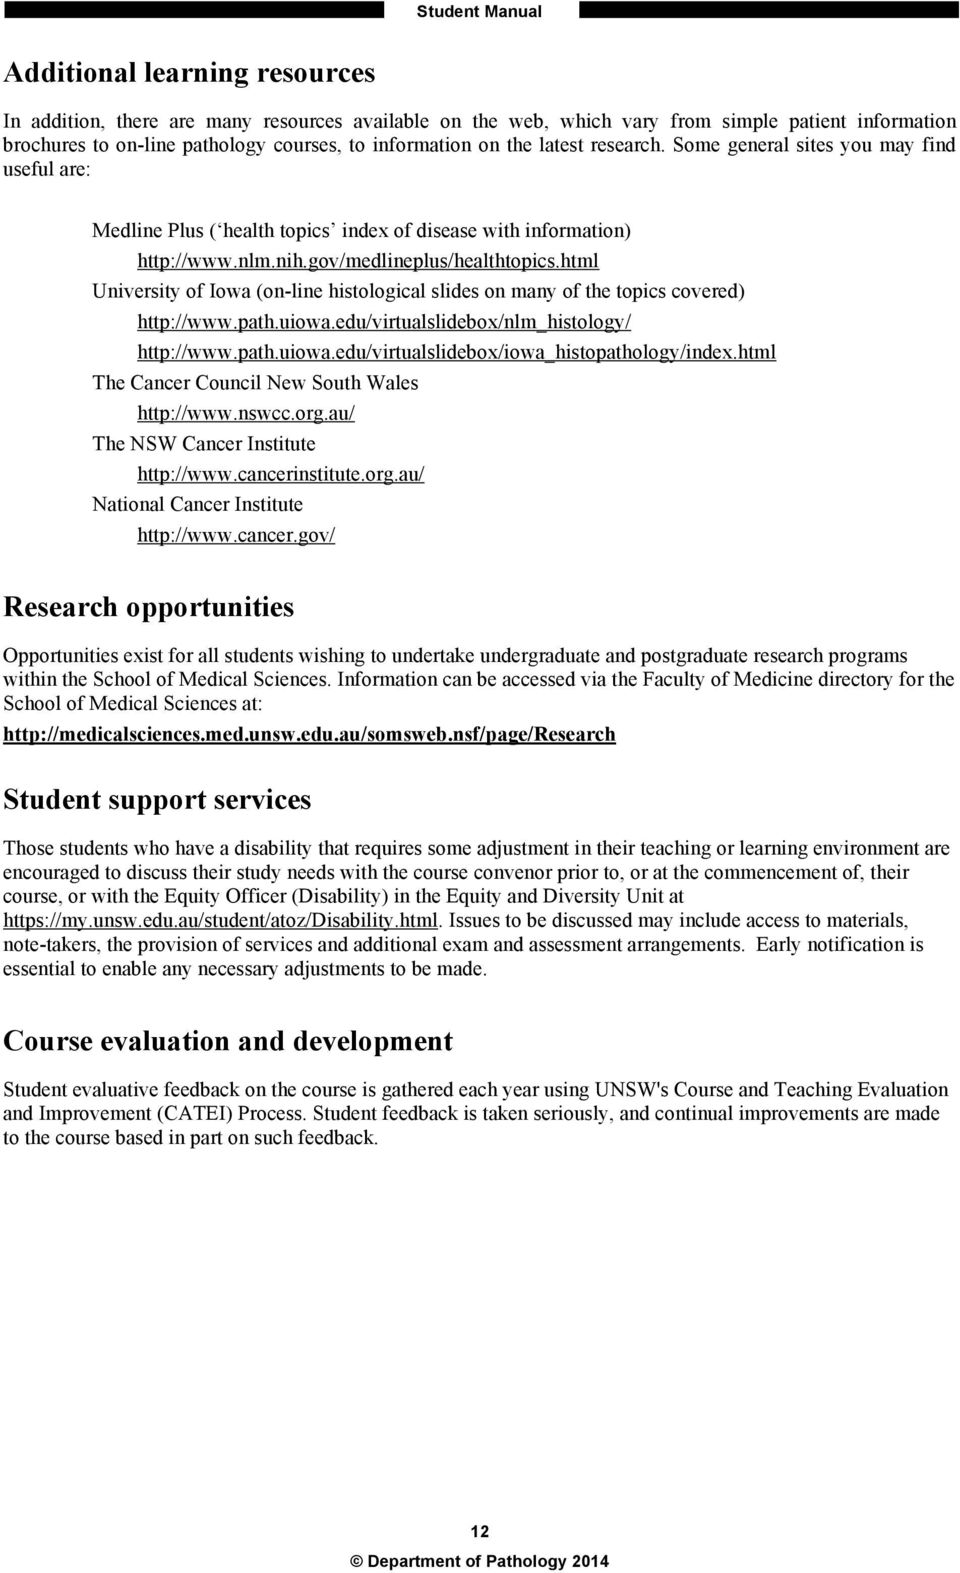 html University of Iowa (on-line histological slides on many of the topics covered) http://www.path.uiowa.edu/virtualslidebox/nlm_histology/ http://www.path.uiowa.edu/virtualslidebox/iowa_histopathology/index.